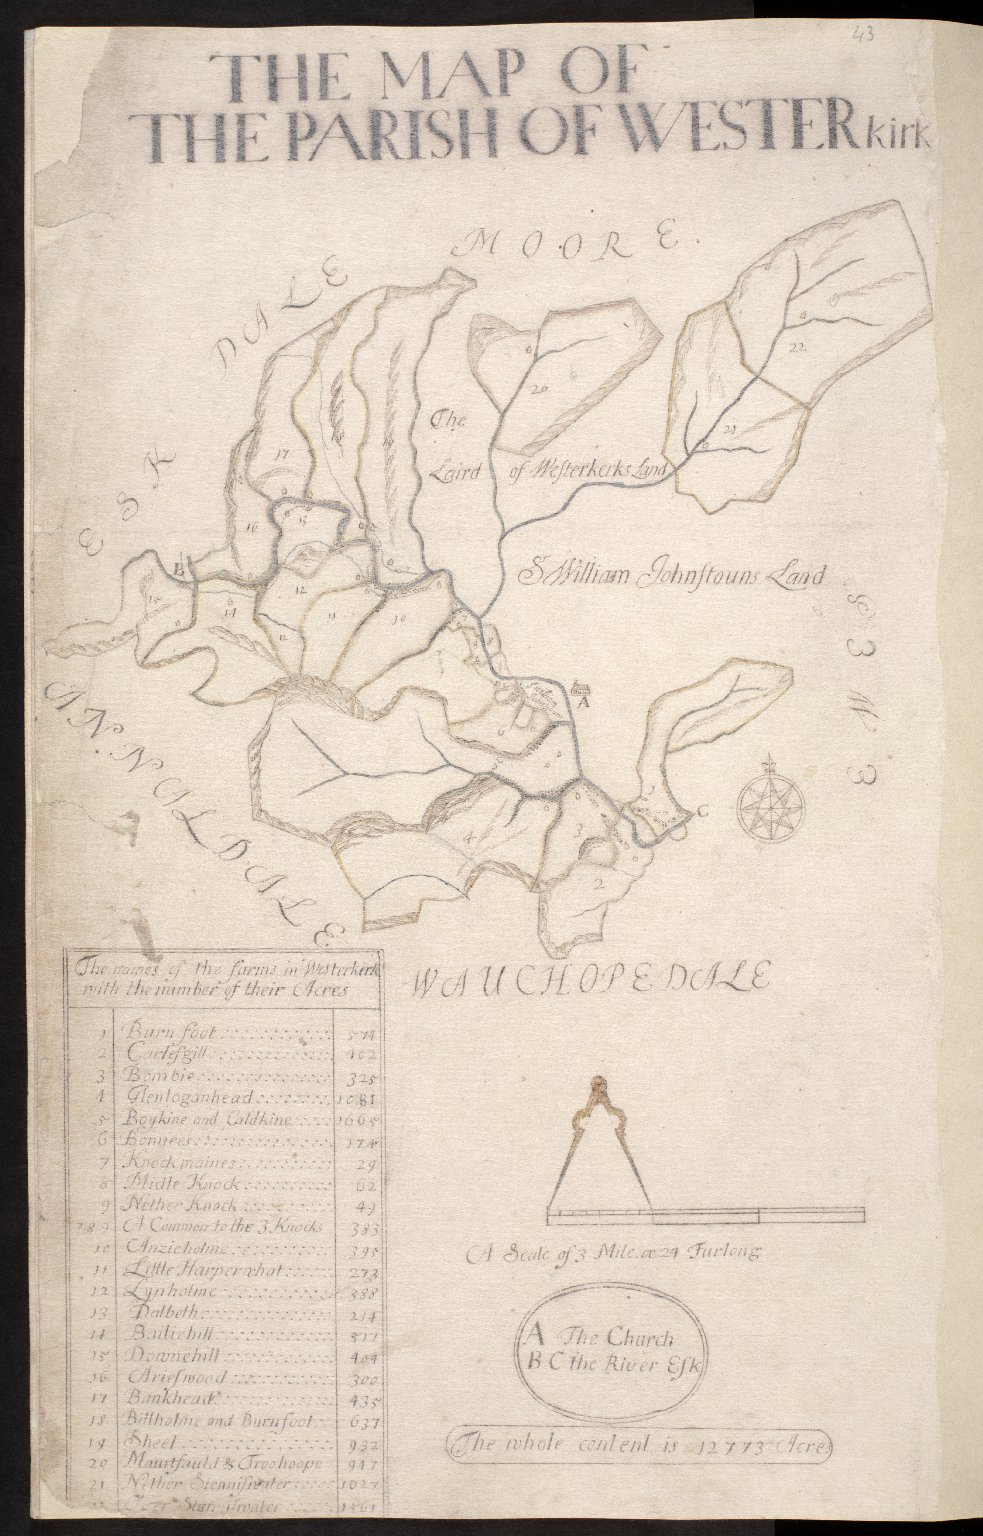 The Map of the Parish of Westerkirk [1 of 1]